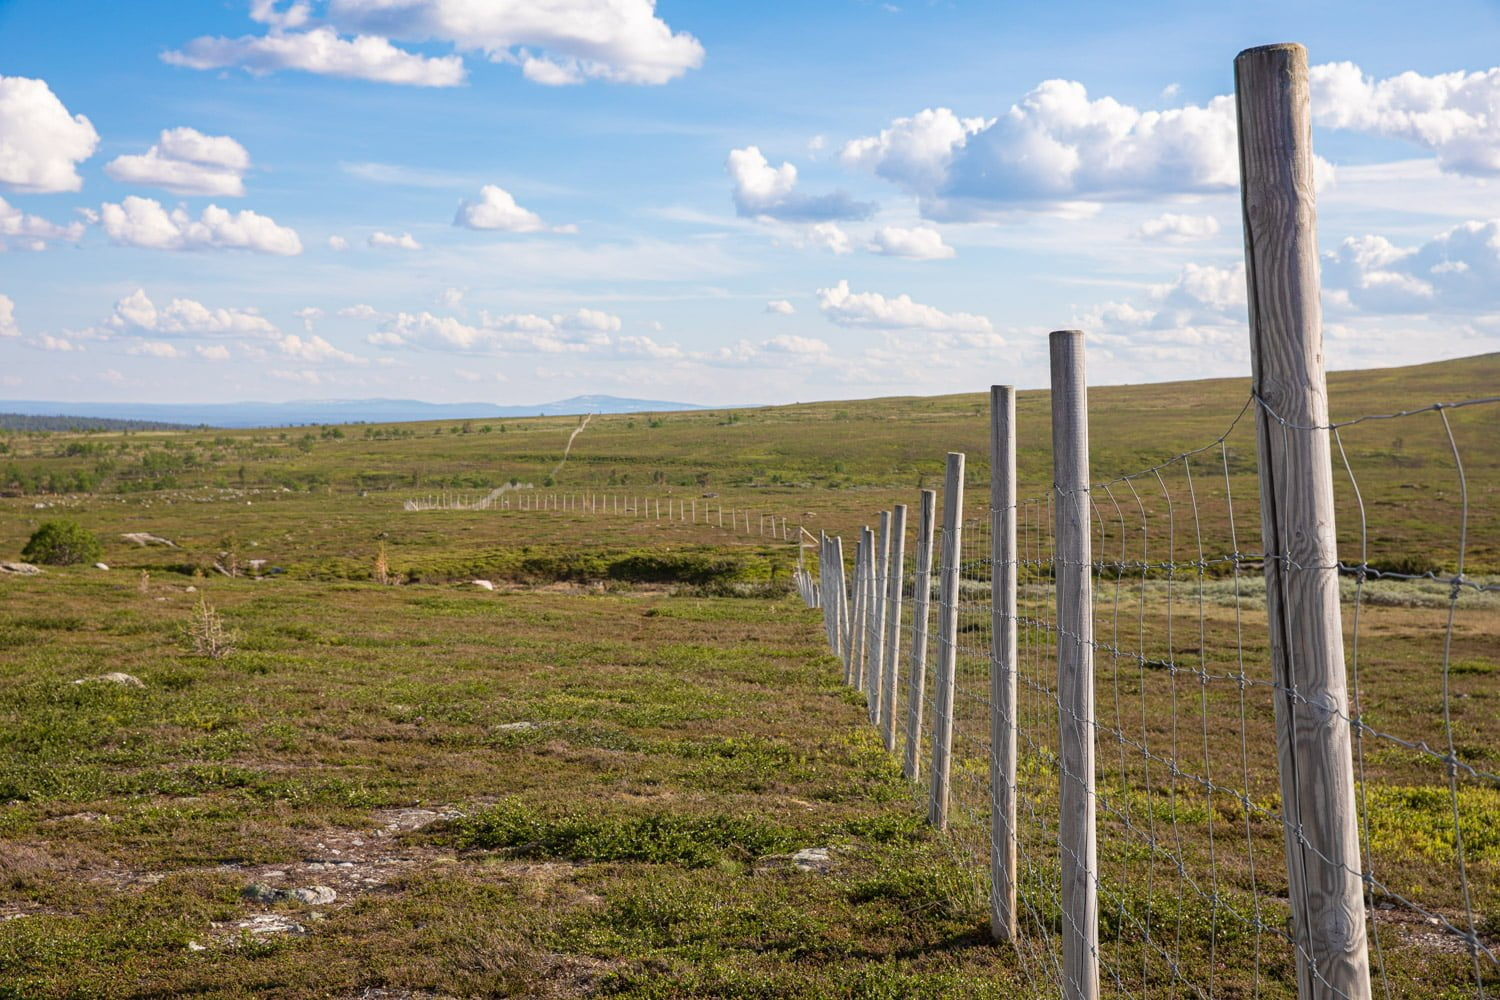 The fence is not the Norwegian border